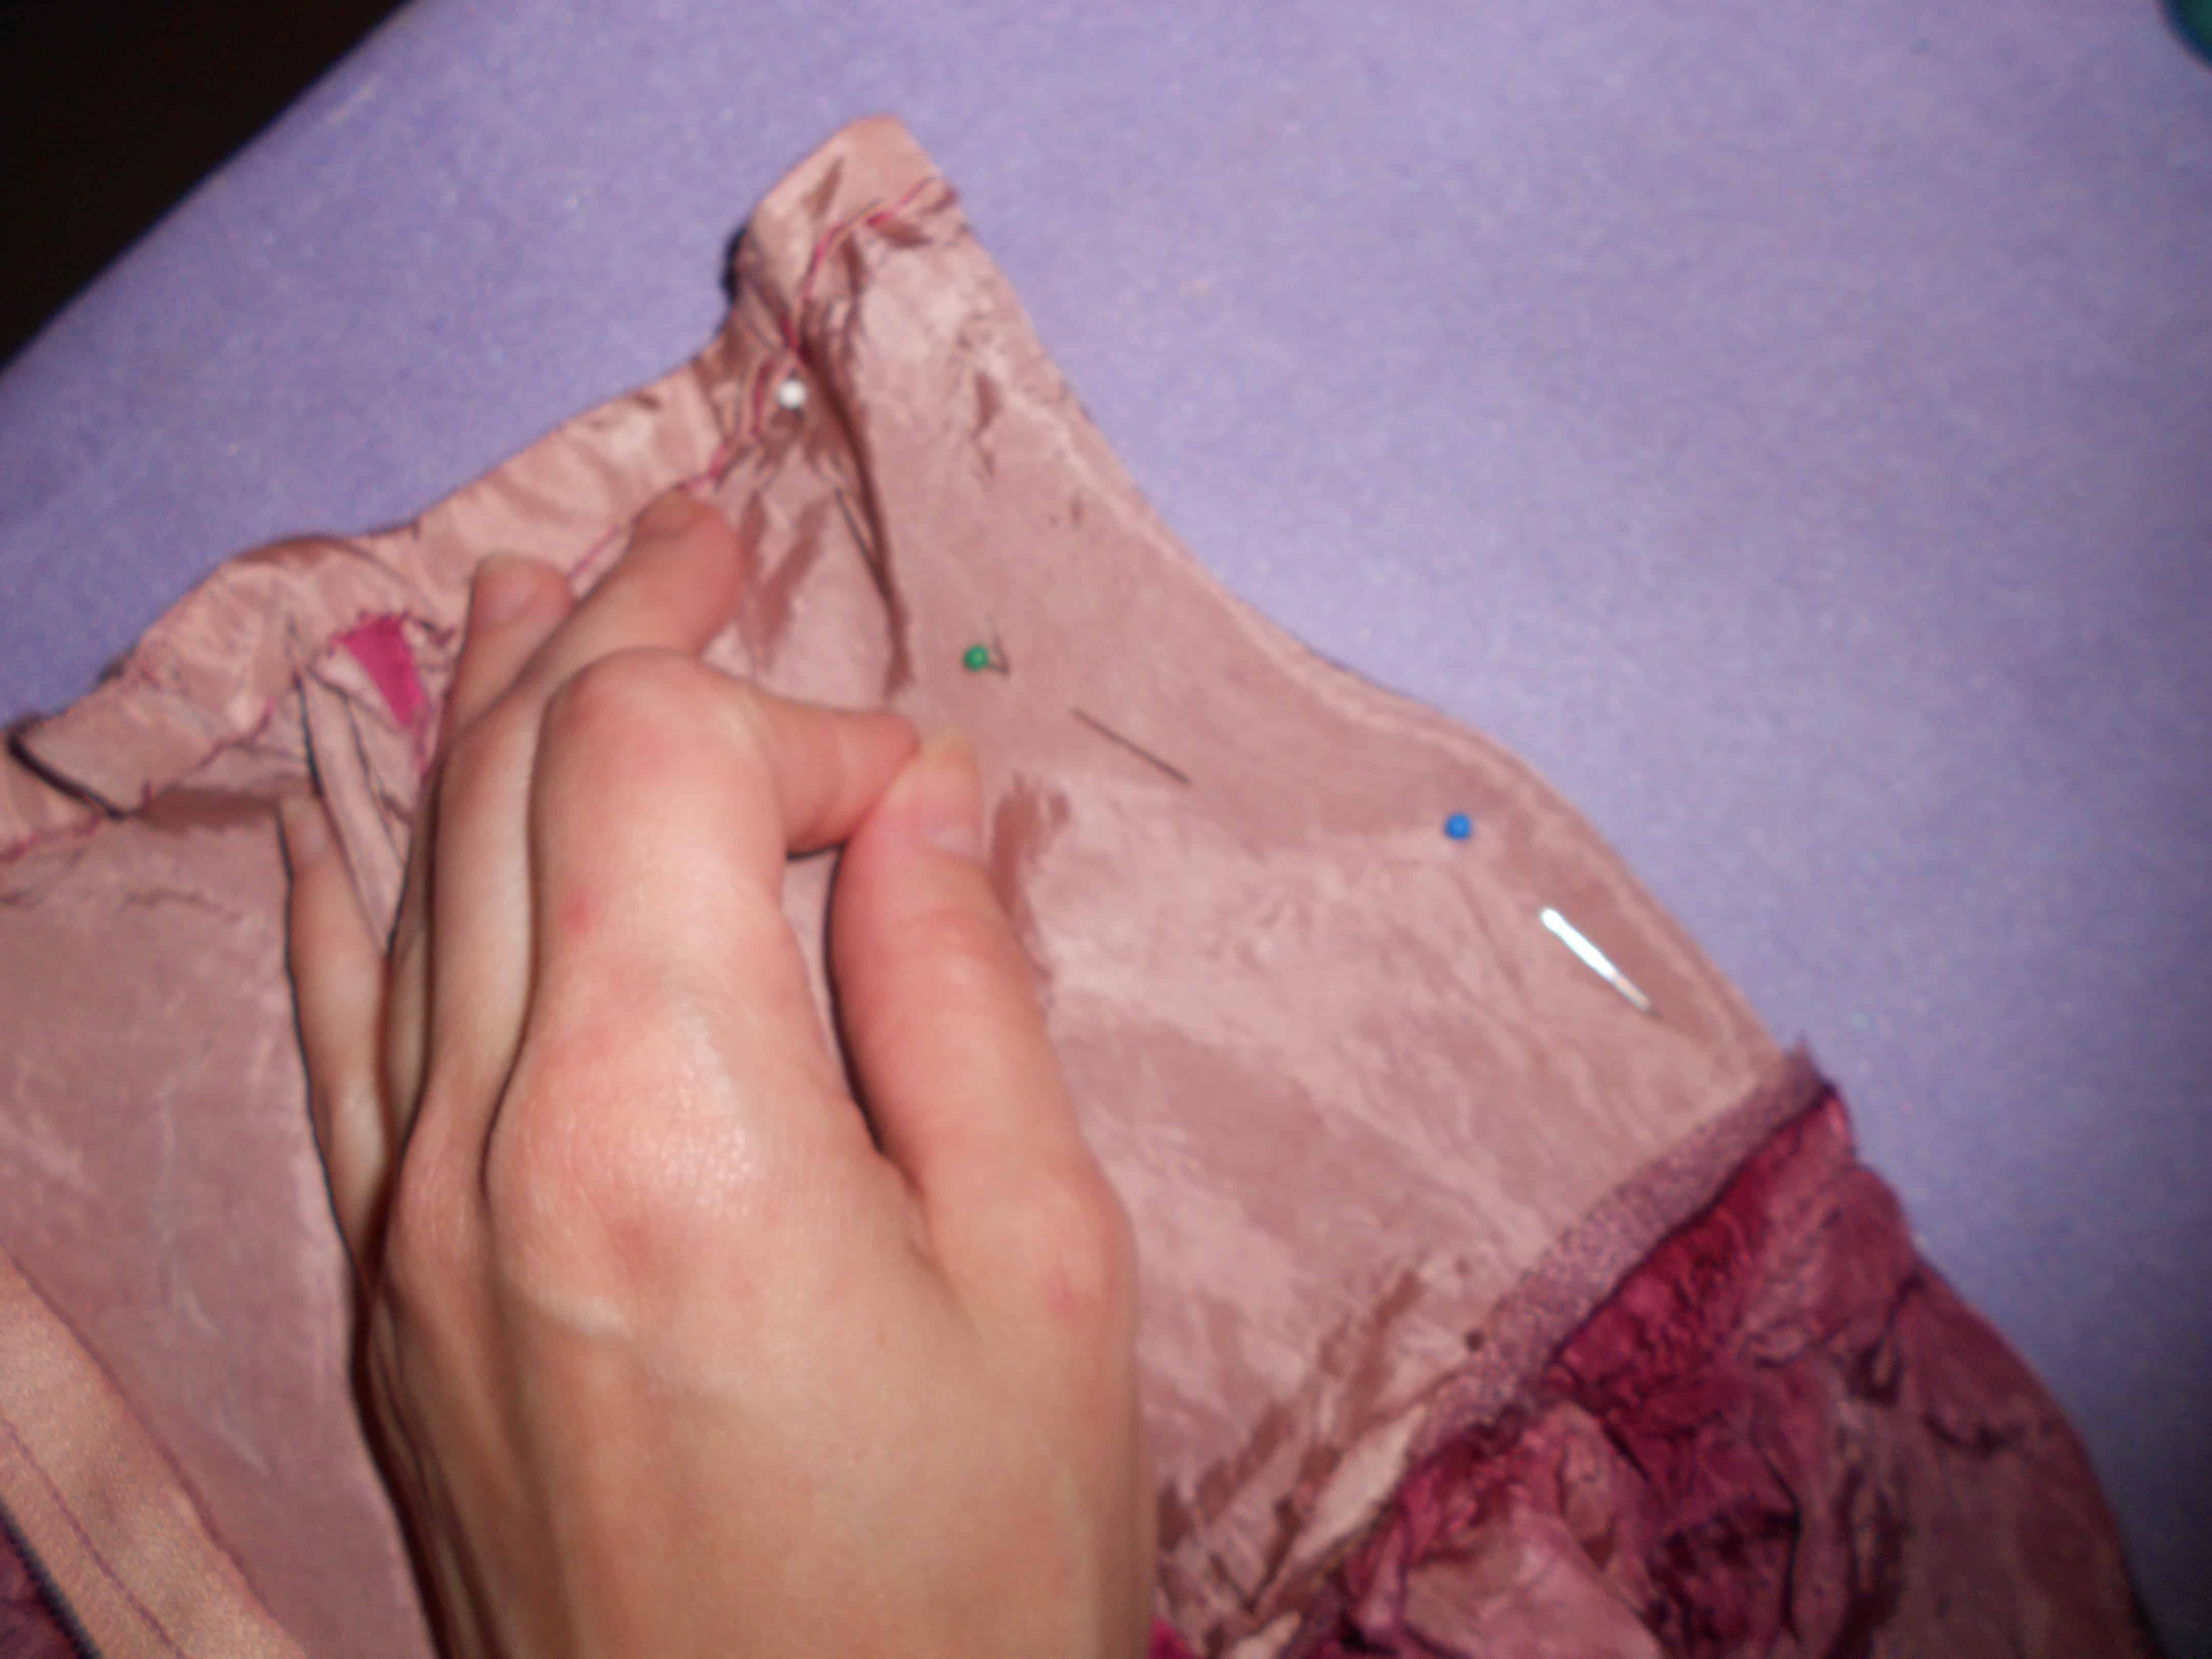 pinning sides of dress